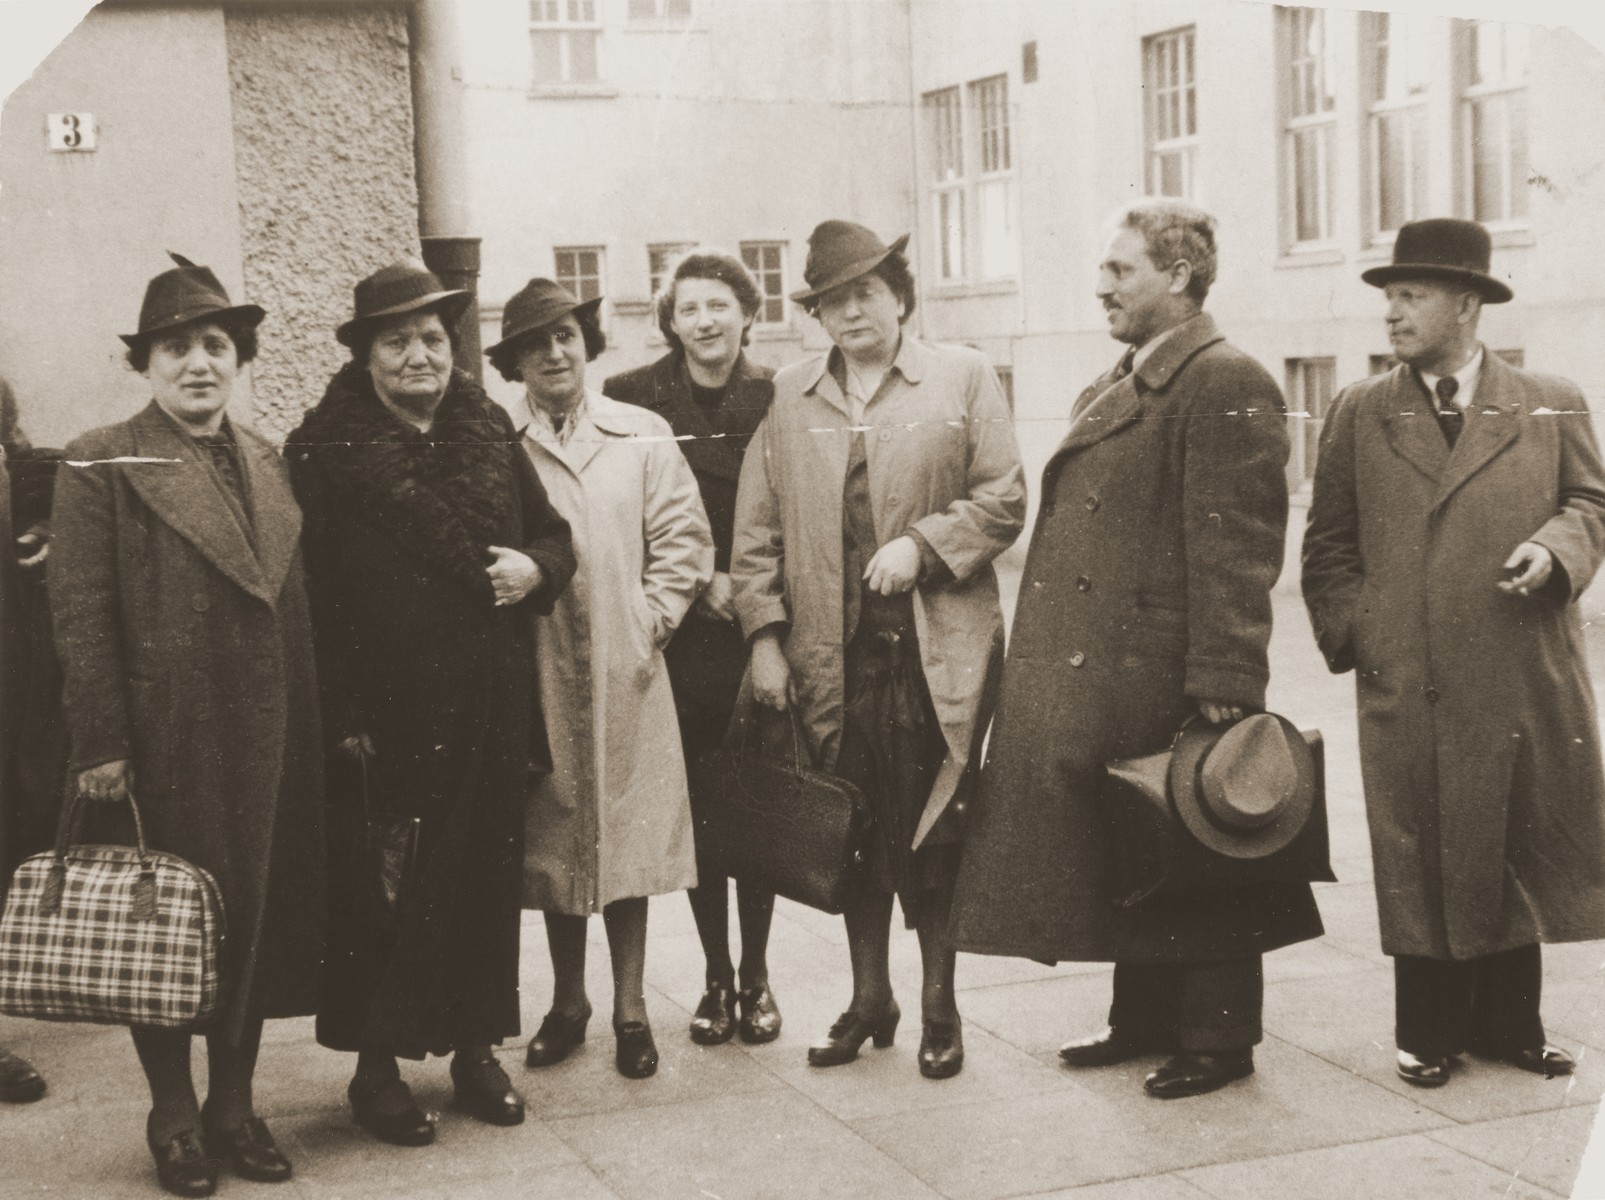 The Penner family gathers in Bremen to bid farewell to Chaya Penner (mother of David Penner) before she sails to the United States.   Pictured from left to right are: Dora (Penner) Rosenmund; Chaya, Janka, unknown and David Penner.